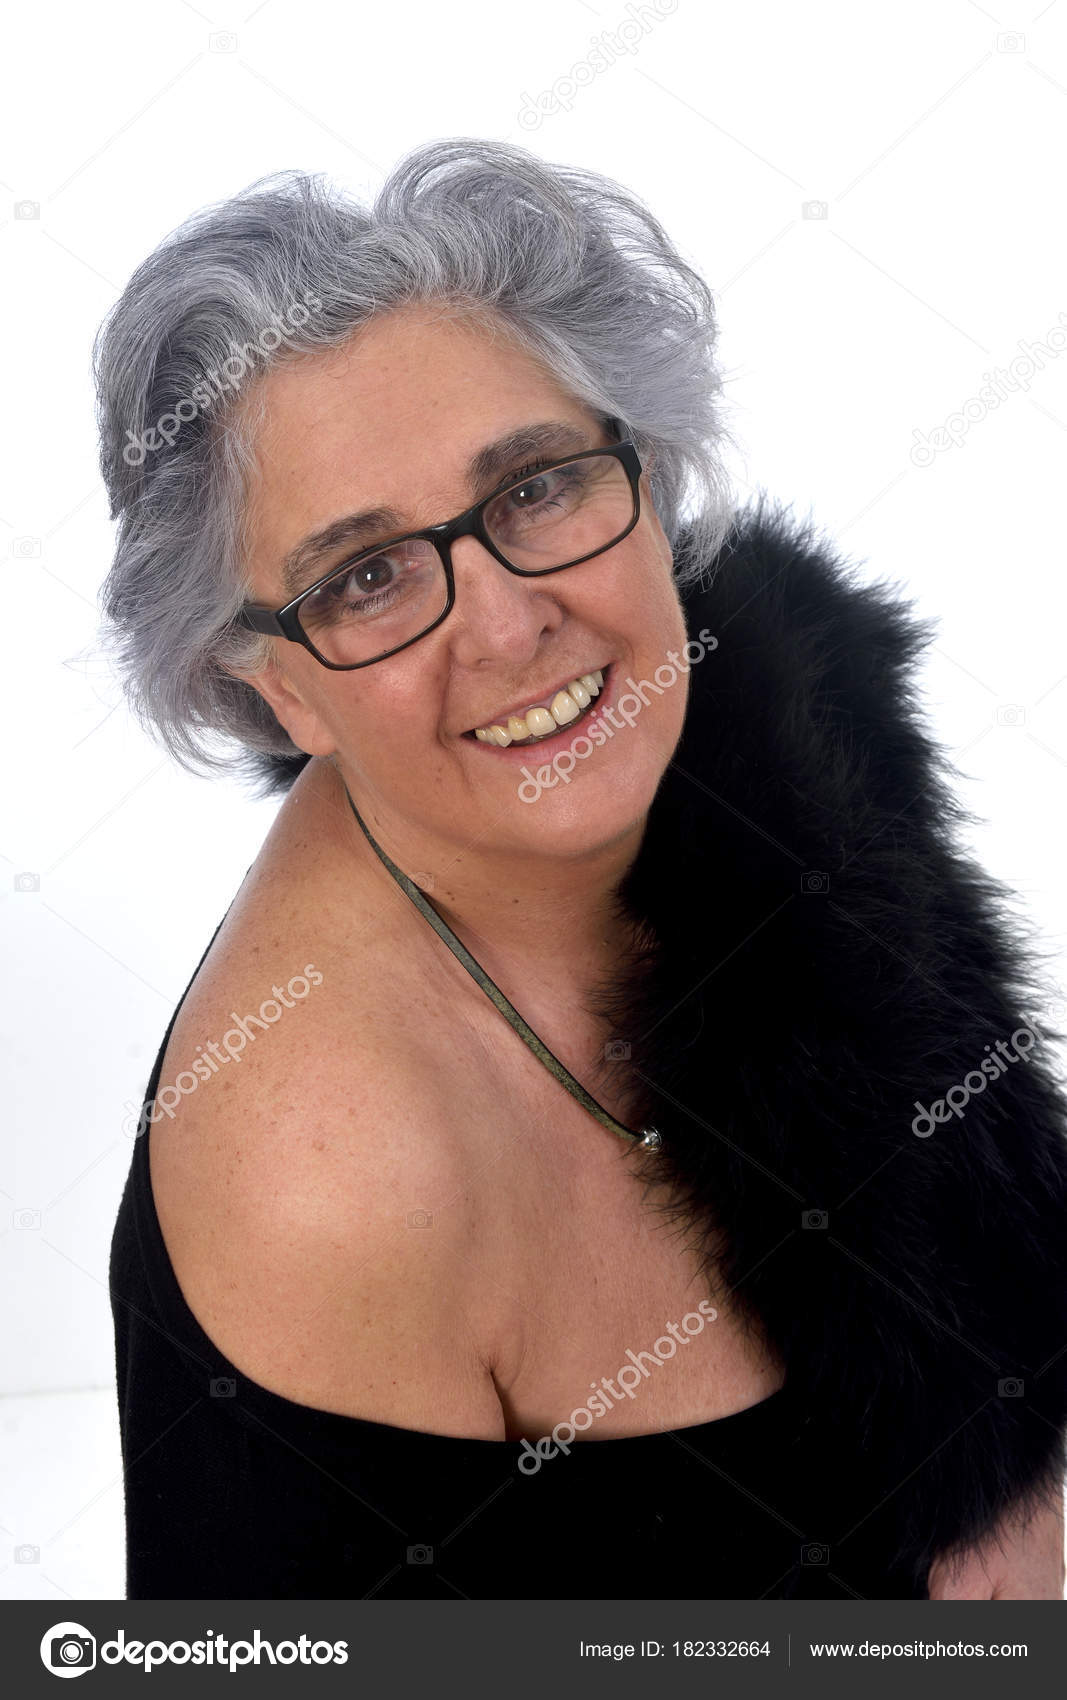 Old lady sexy photo